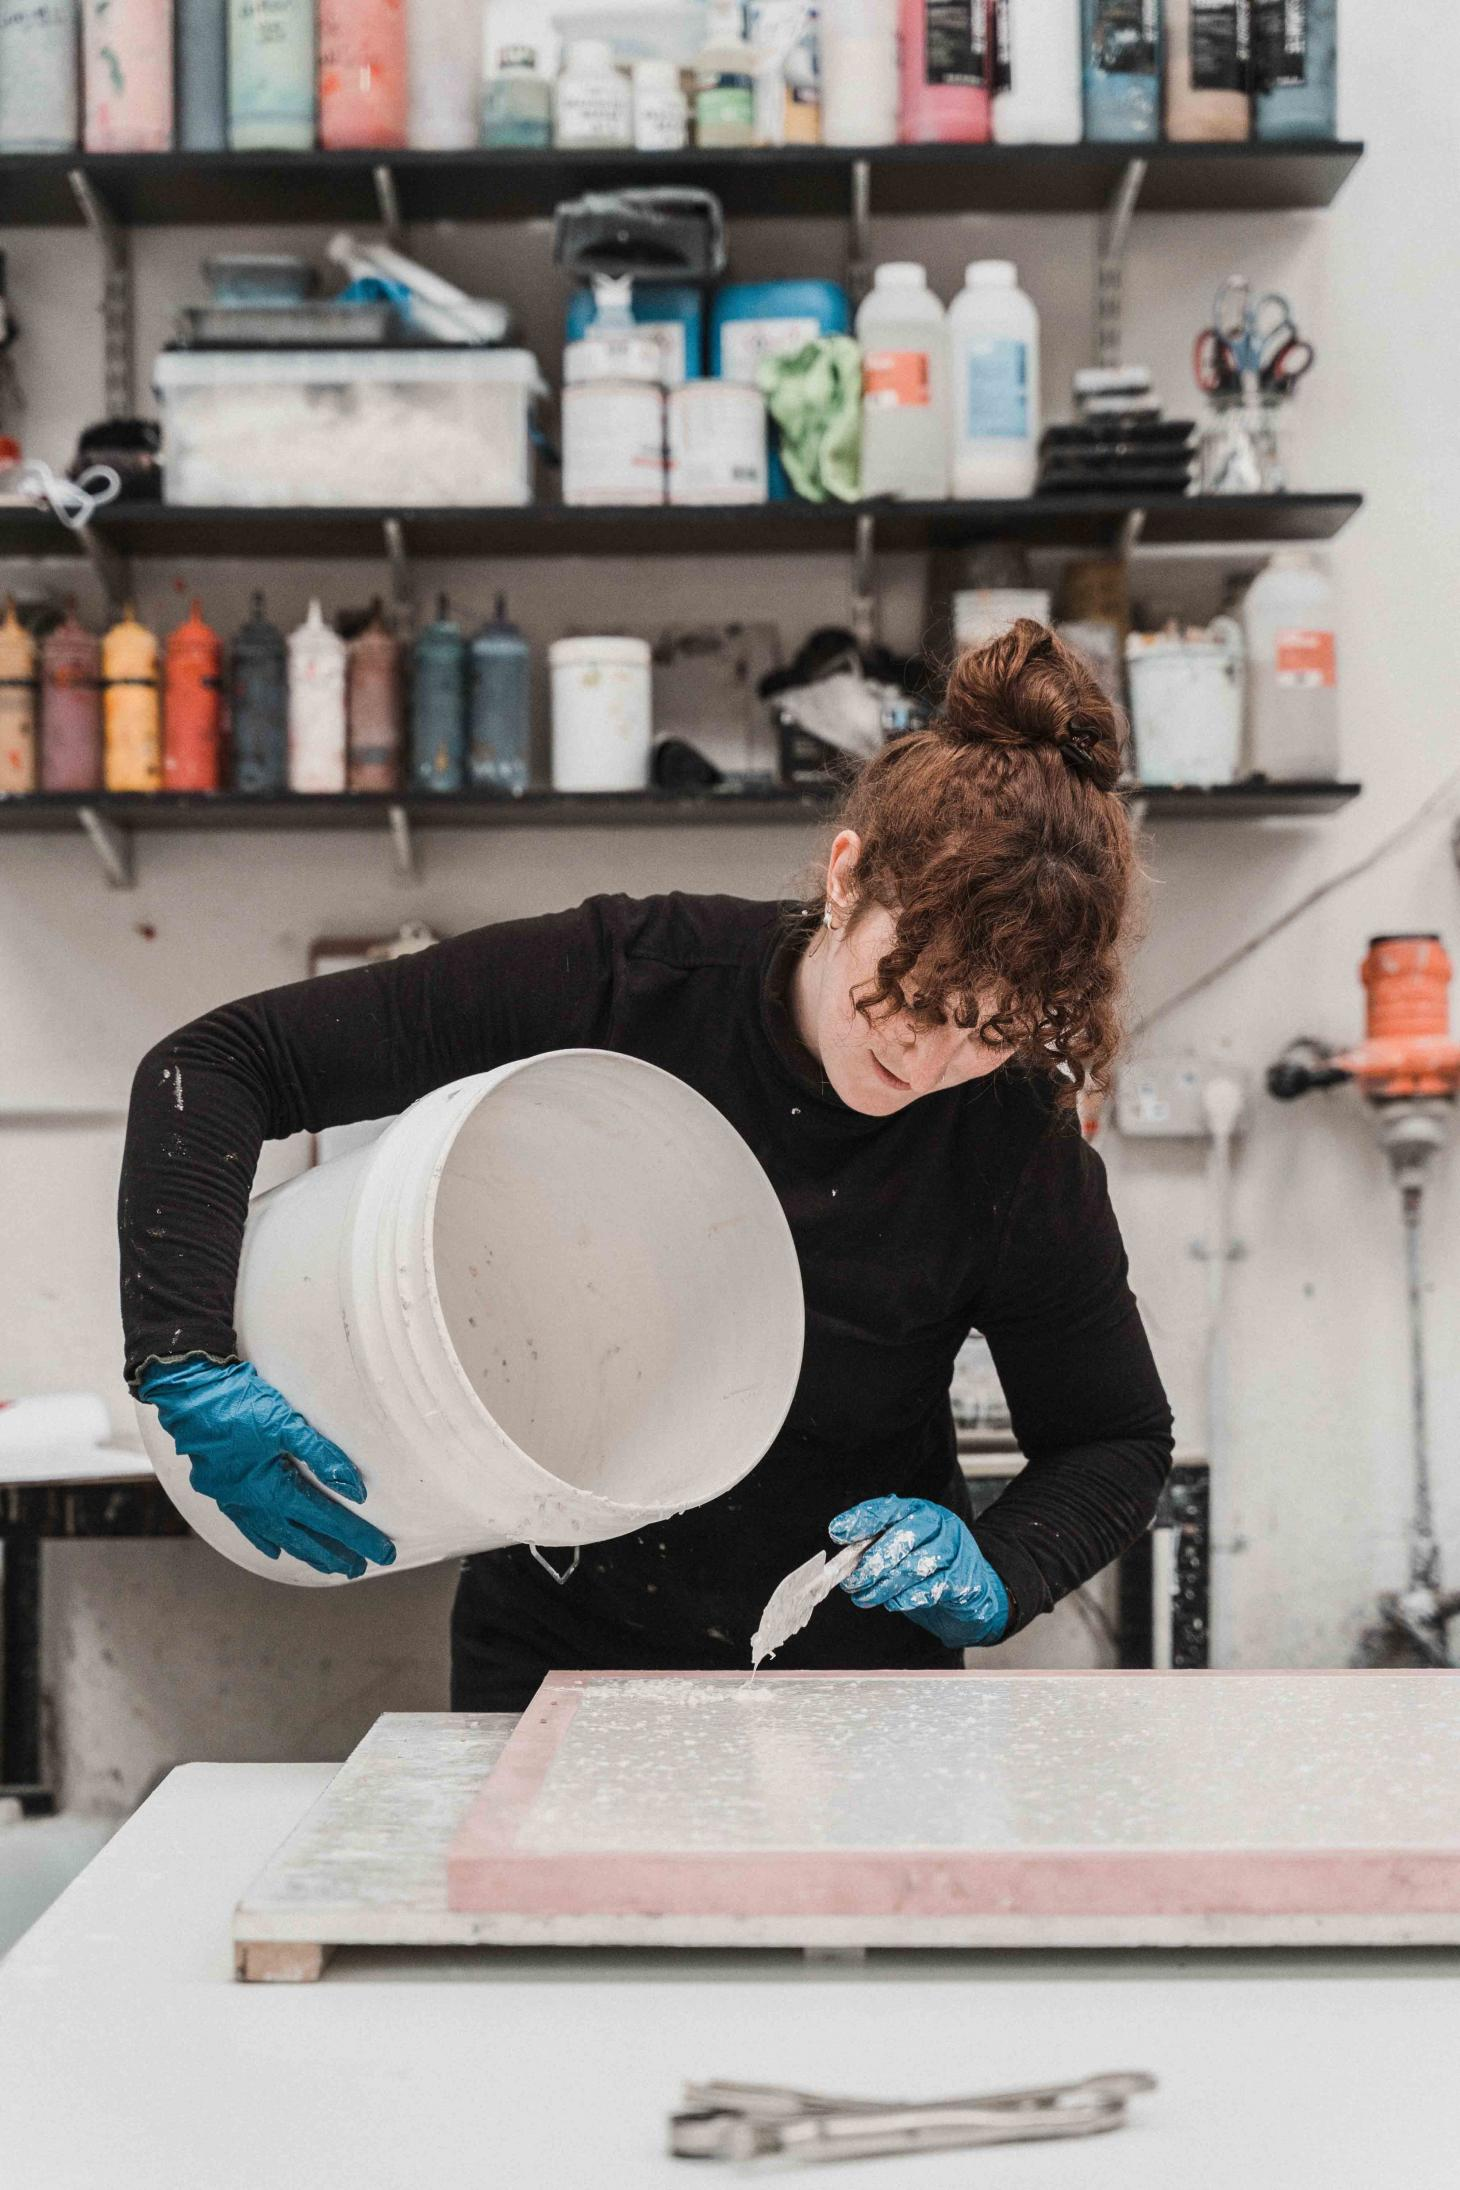 Olivia Aspinall creating terrazzo surface in her Nottingham studio with samples on shelves in the background